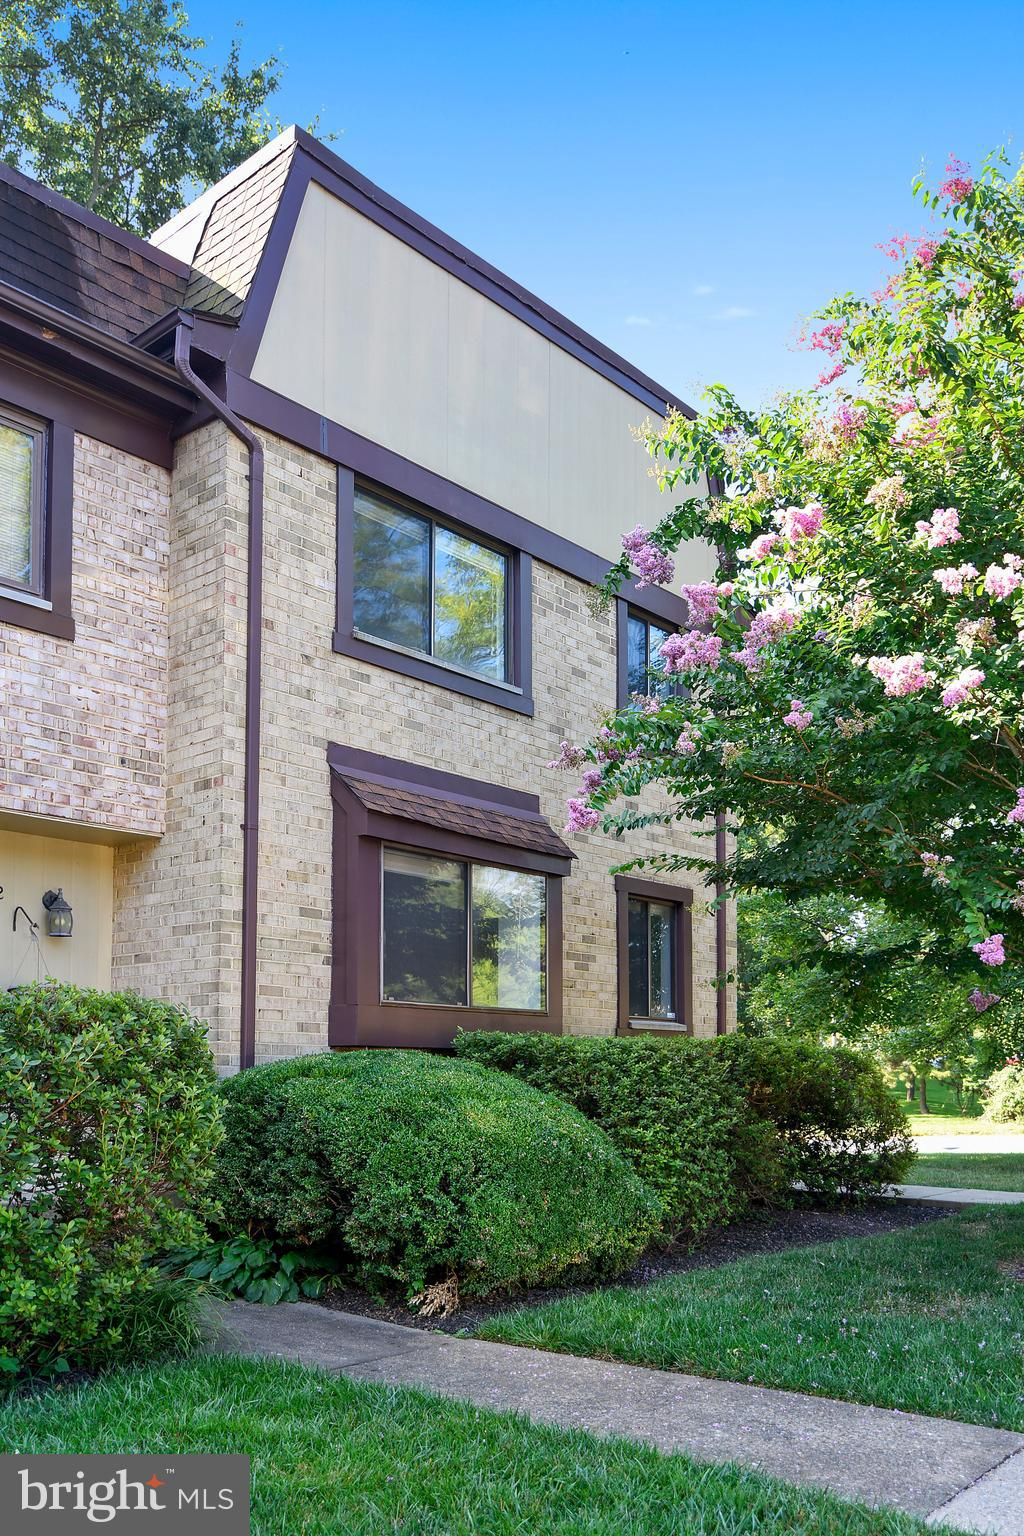 Hidden and rare gem situated in Treebrook, a community conveniently nestled in the heart of Oakton, VA. This spacious and airy end unit just went through its latest round of renovations this summer. These include: brand new bathrooms, new flooring on the main level, and fresh paint throughout the entire home. The property boasts brand new water heater, an HVAC system from 2012, and offers an incredible amount of natural light. Walking distance to local parks, a bus stop, and less than 5 minutes from Chain Bridge Rd, I66, Rt. 50.